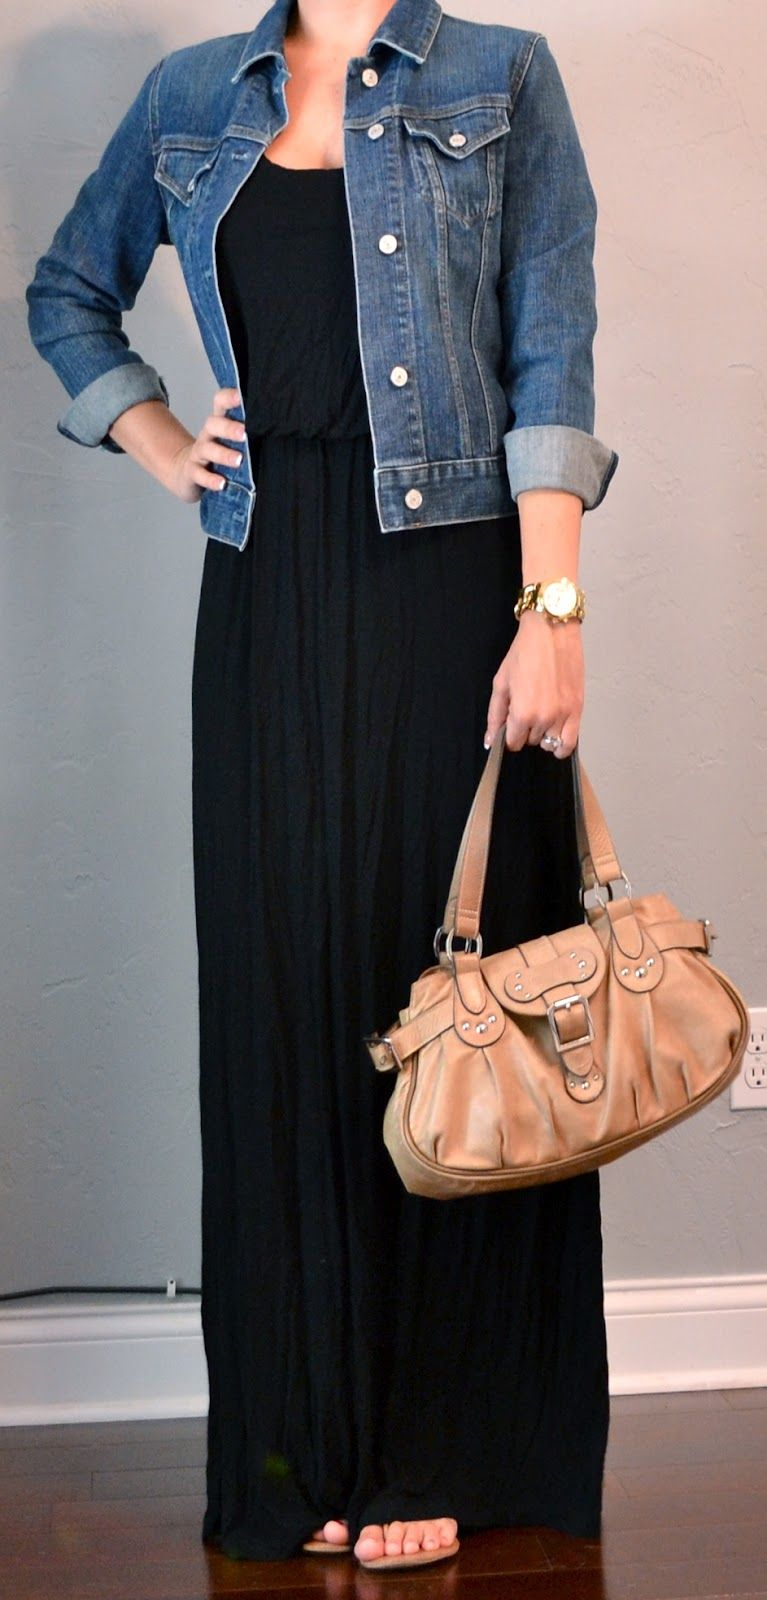 Black dress jean jacket - Outfit Posts Outfit Post Black Maxi Dress Jean Jacket